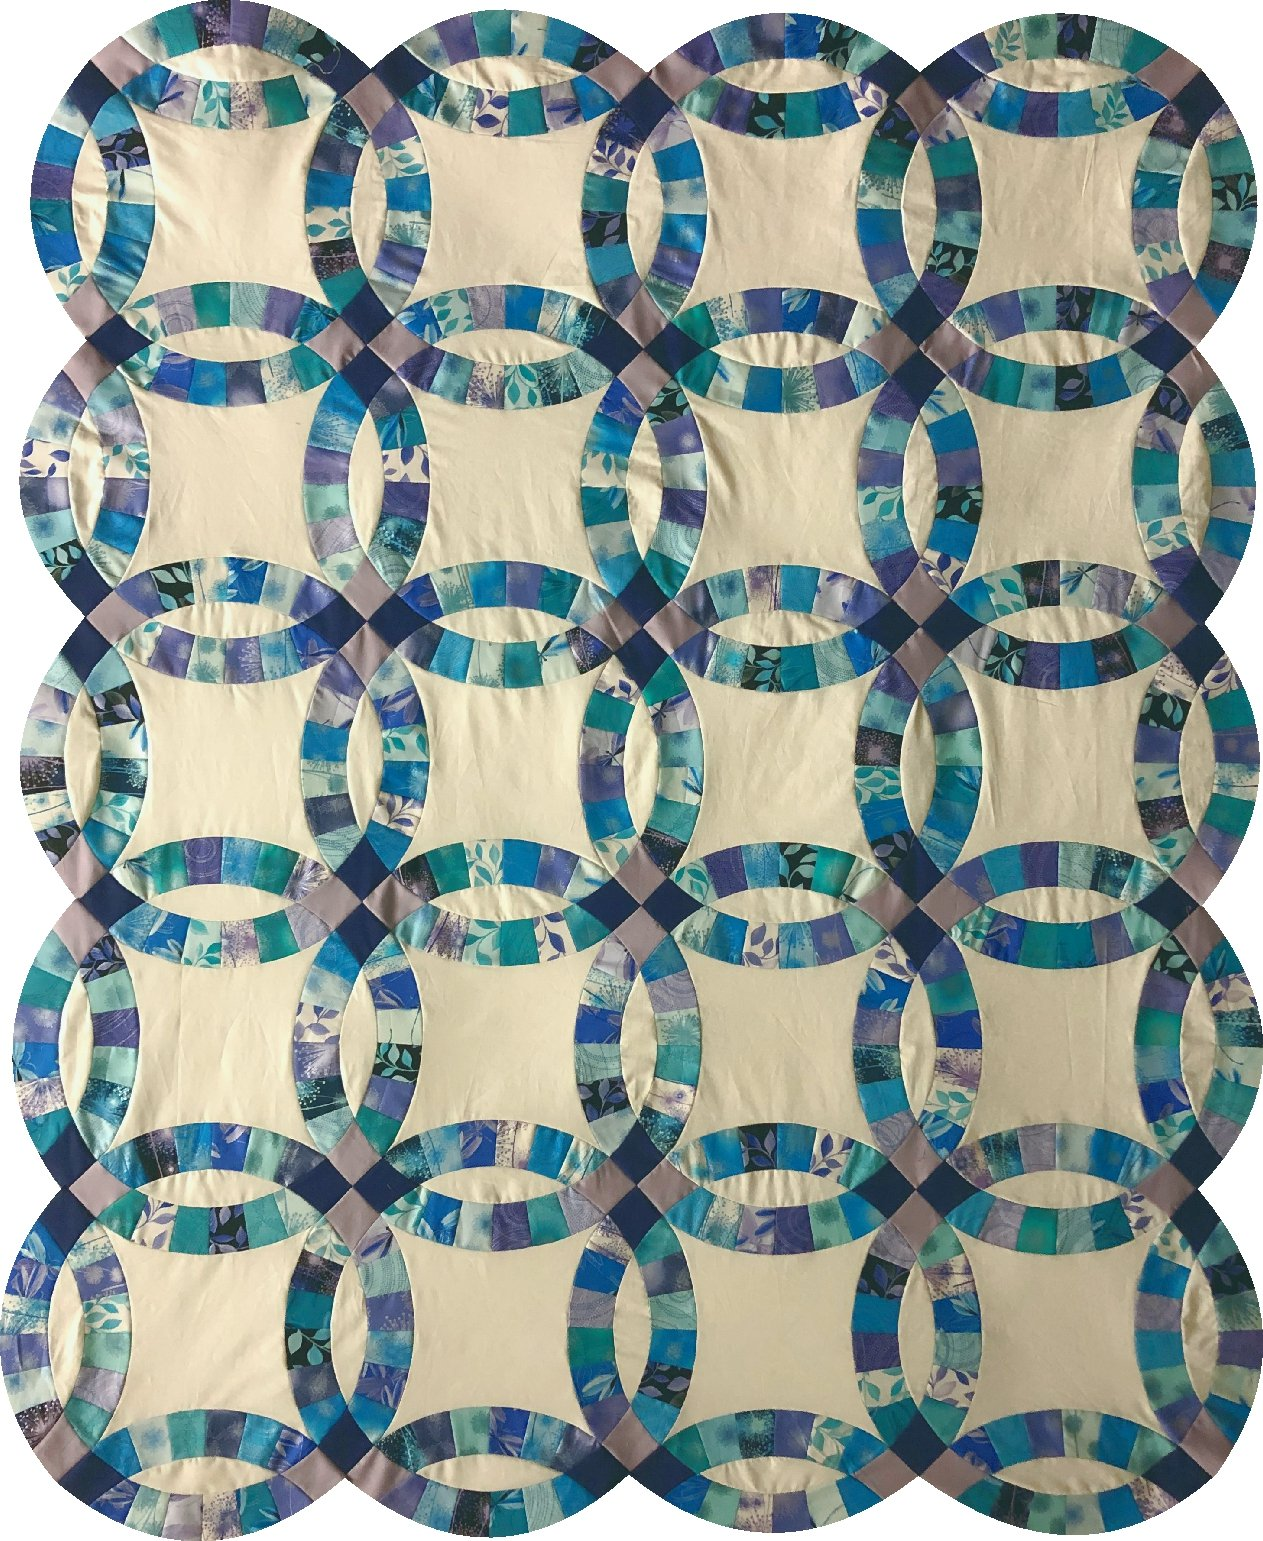 Double Wedding Ring blue purple and teal Pre cut kit